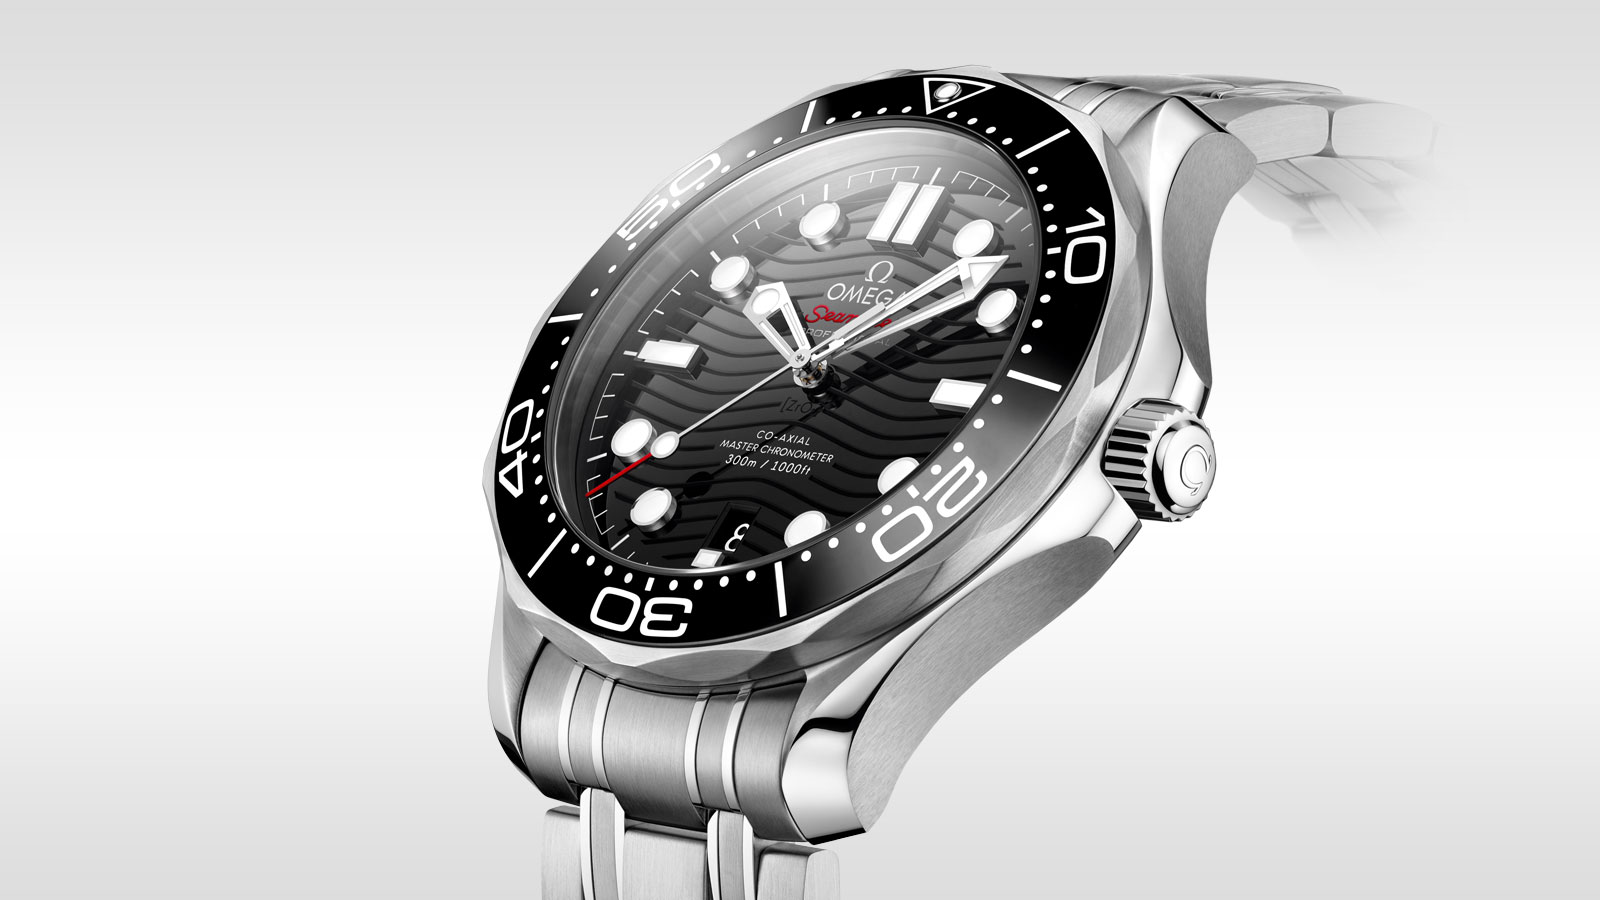 Seamaster Diver 300 M Diver 300M Omega Co‑Axial Master Chronometer 42 mm - 210.30.42.20.01.001 - View 2